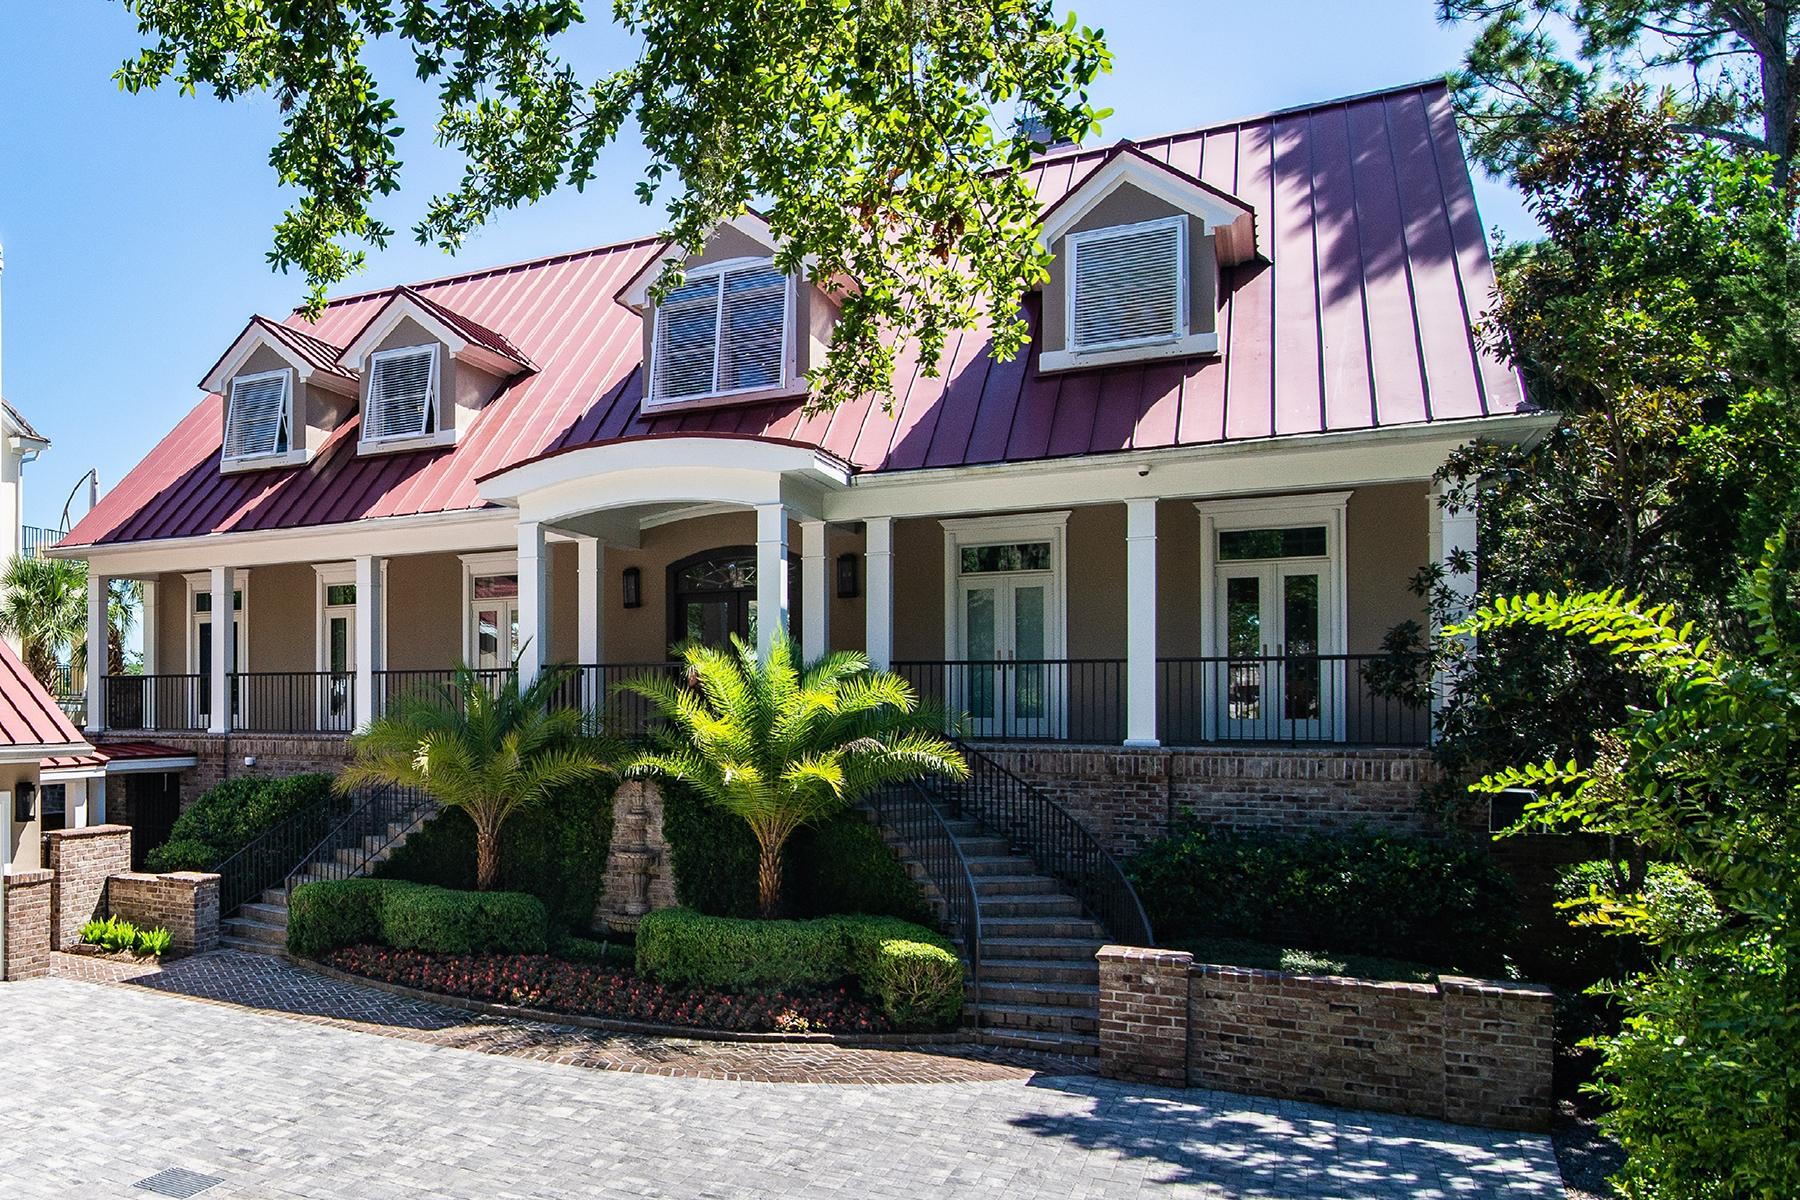 Single Family Homes for Sale at River views, sunsets and deep water on Amelia Island 135 Long Point Drive Amelia Island, Florida 32034 United States